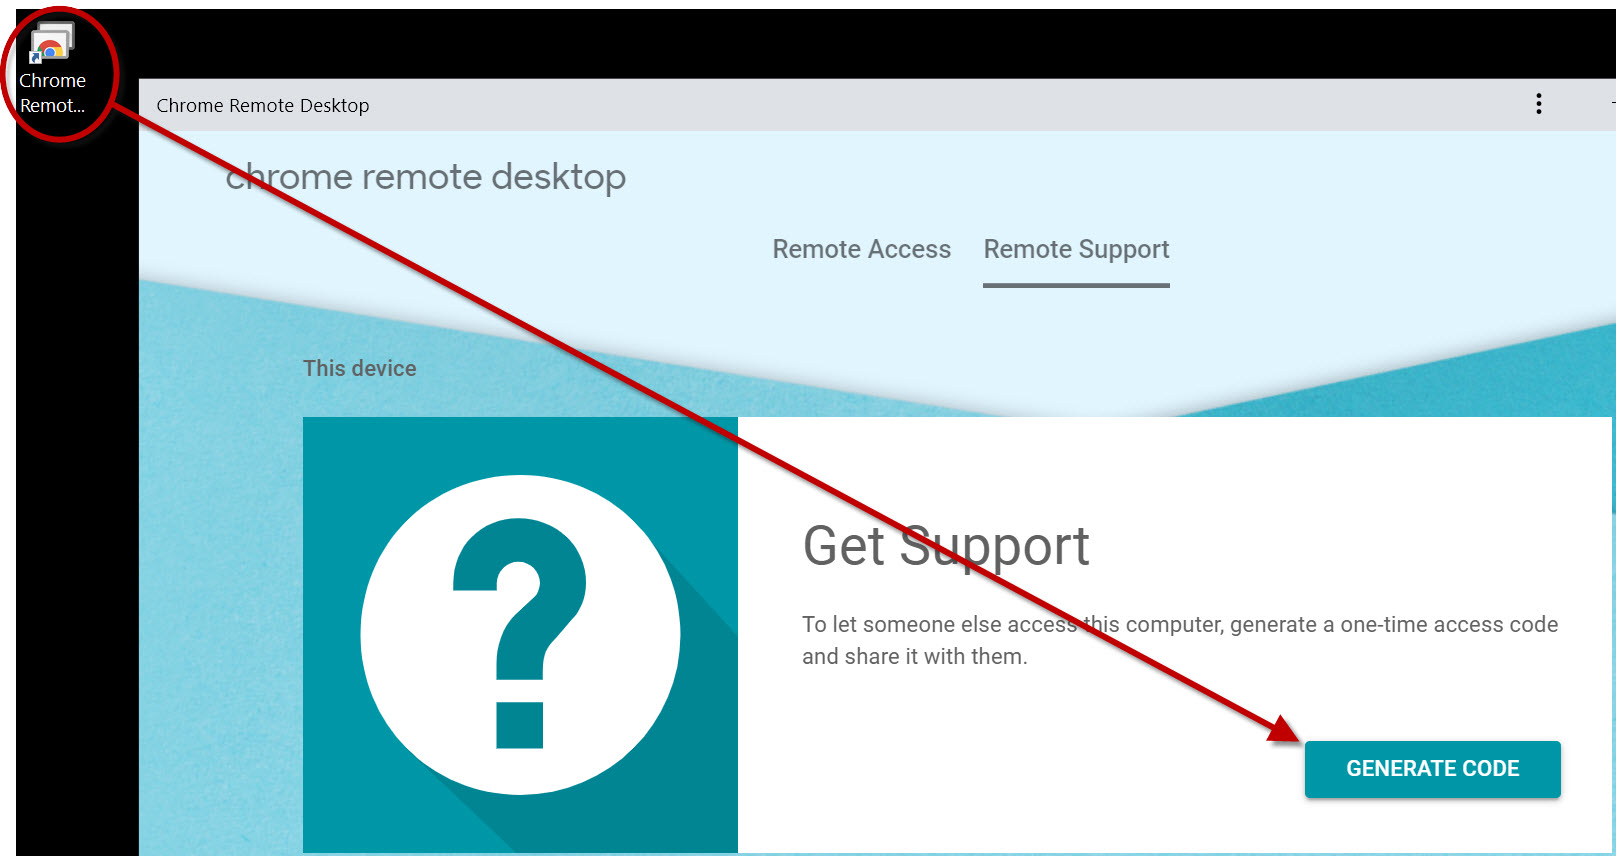 chrome remote desktop shortcut